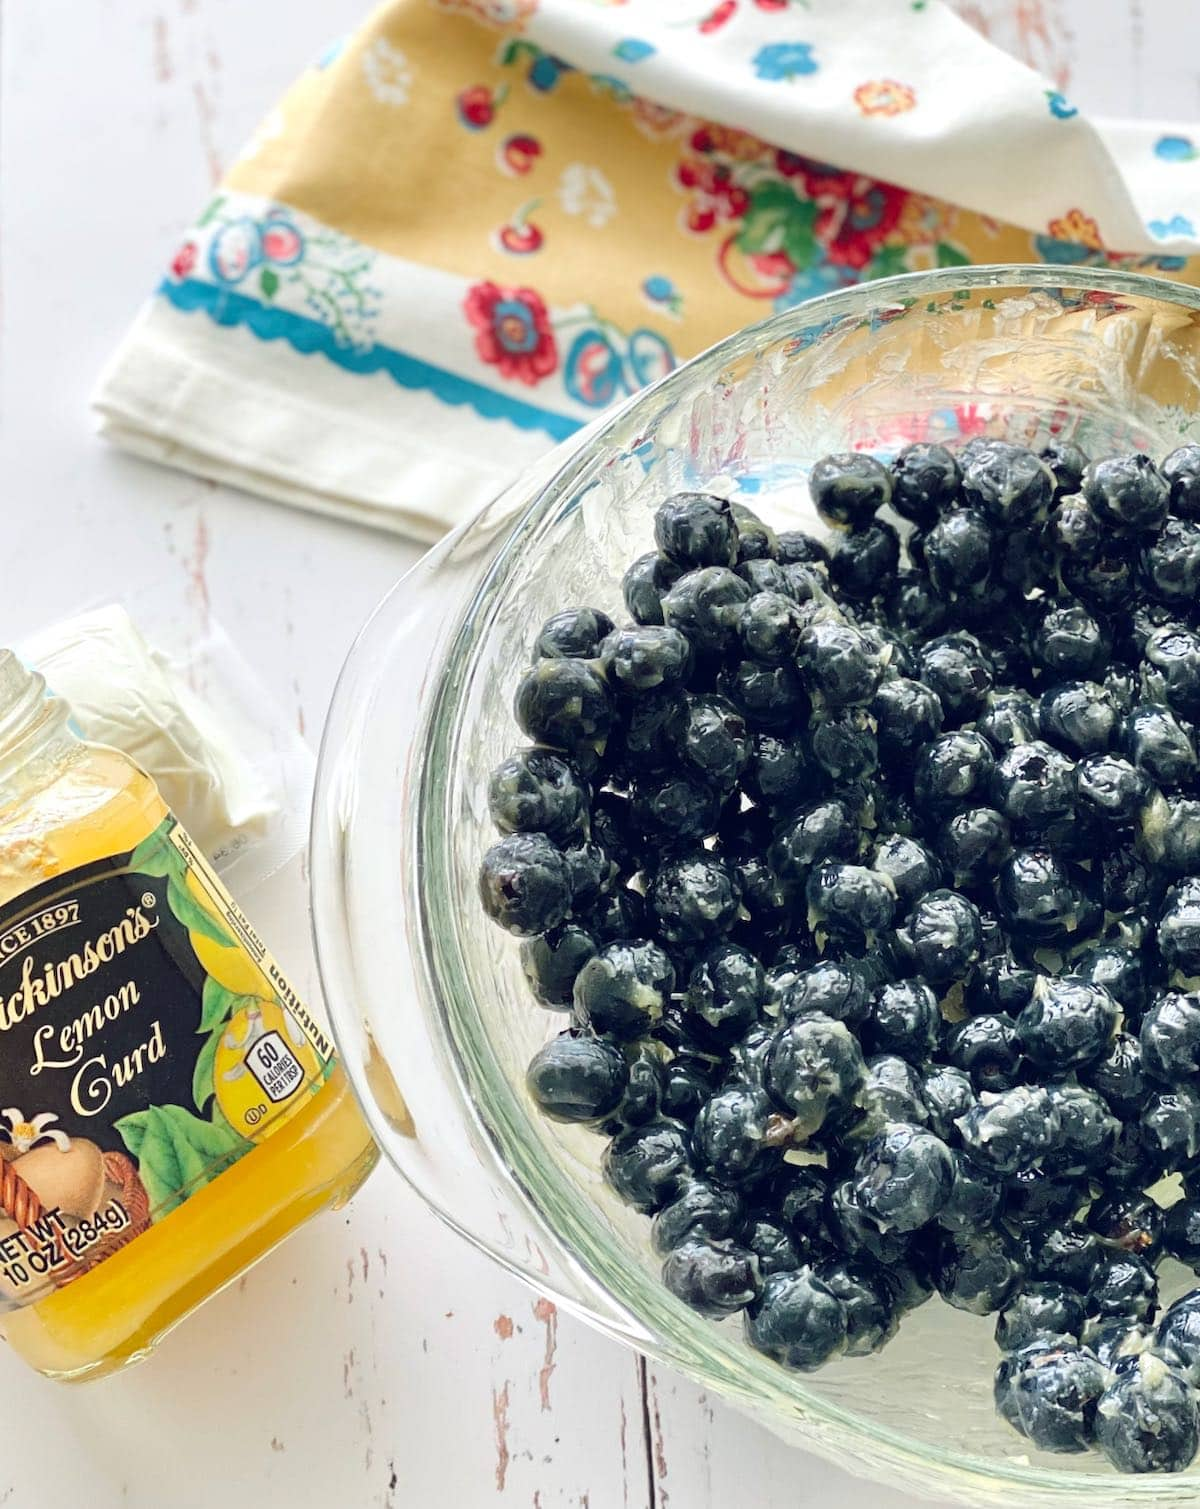 bowl of blueberries with lemon curd.